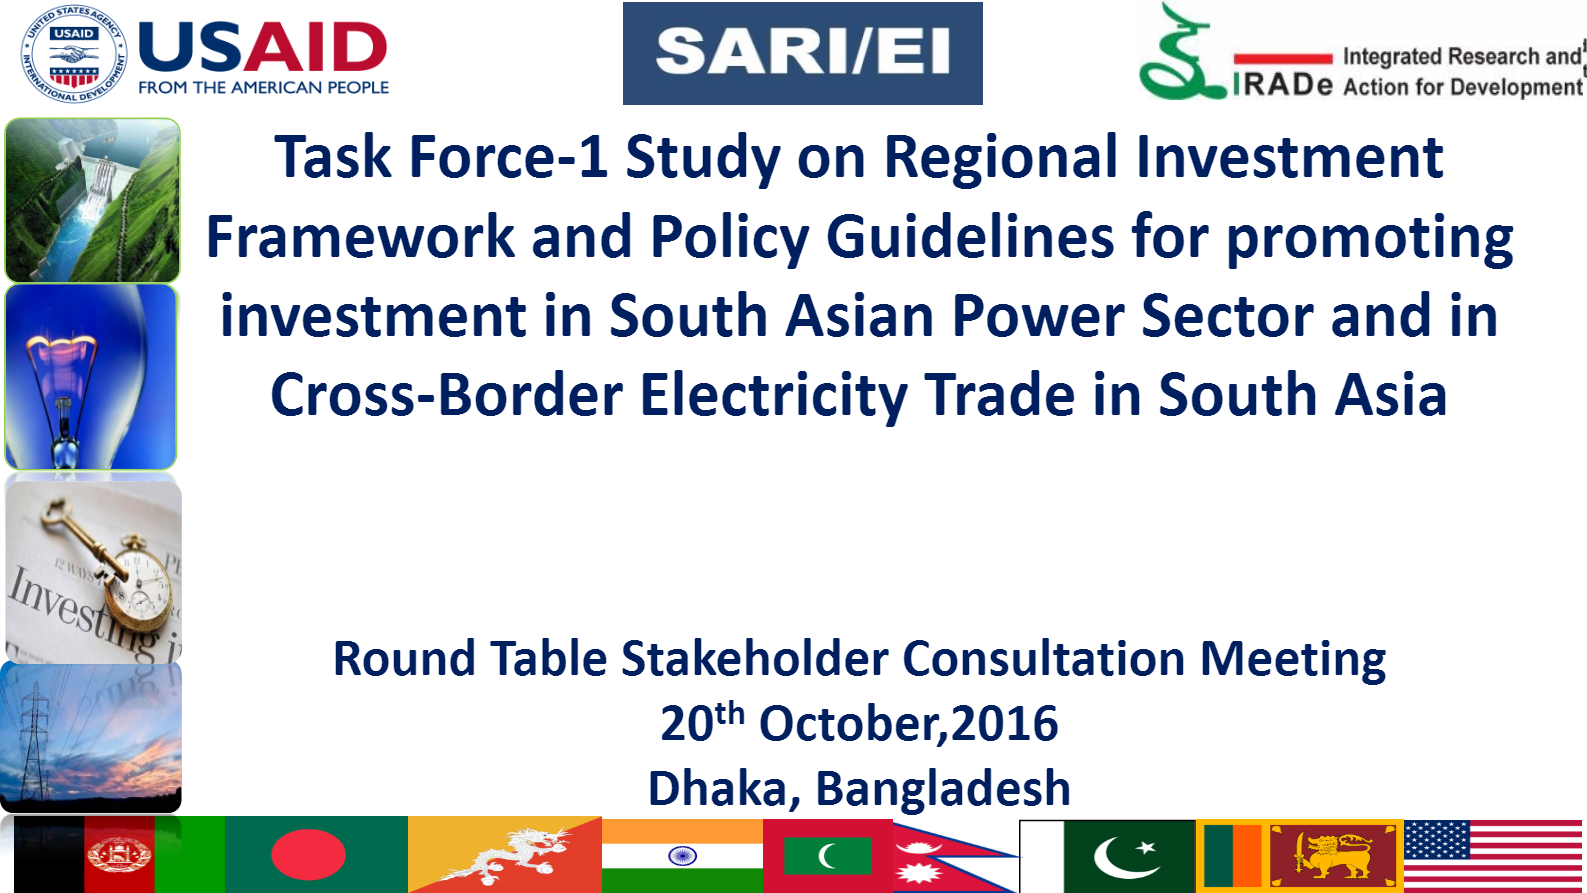 Regional-Investment-Framework-and-Policy-Guidelines-Bangladesh-Workshop-2016-Delloitte-Rajiv-SARI-EI-IRADe